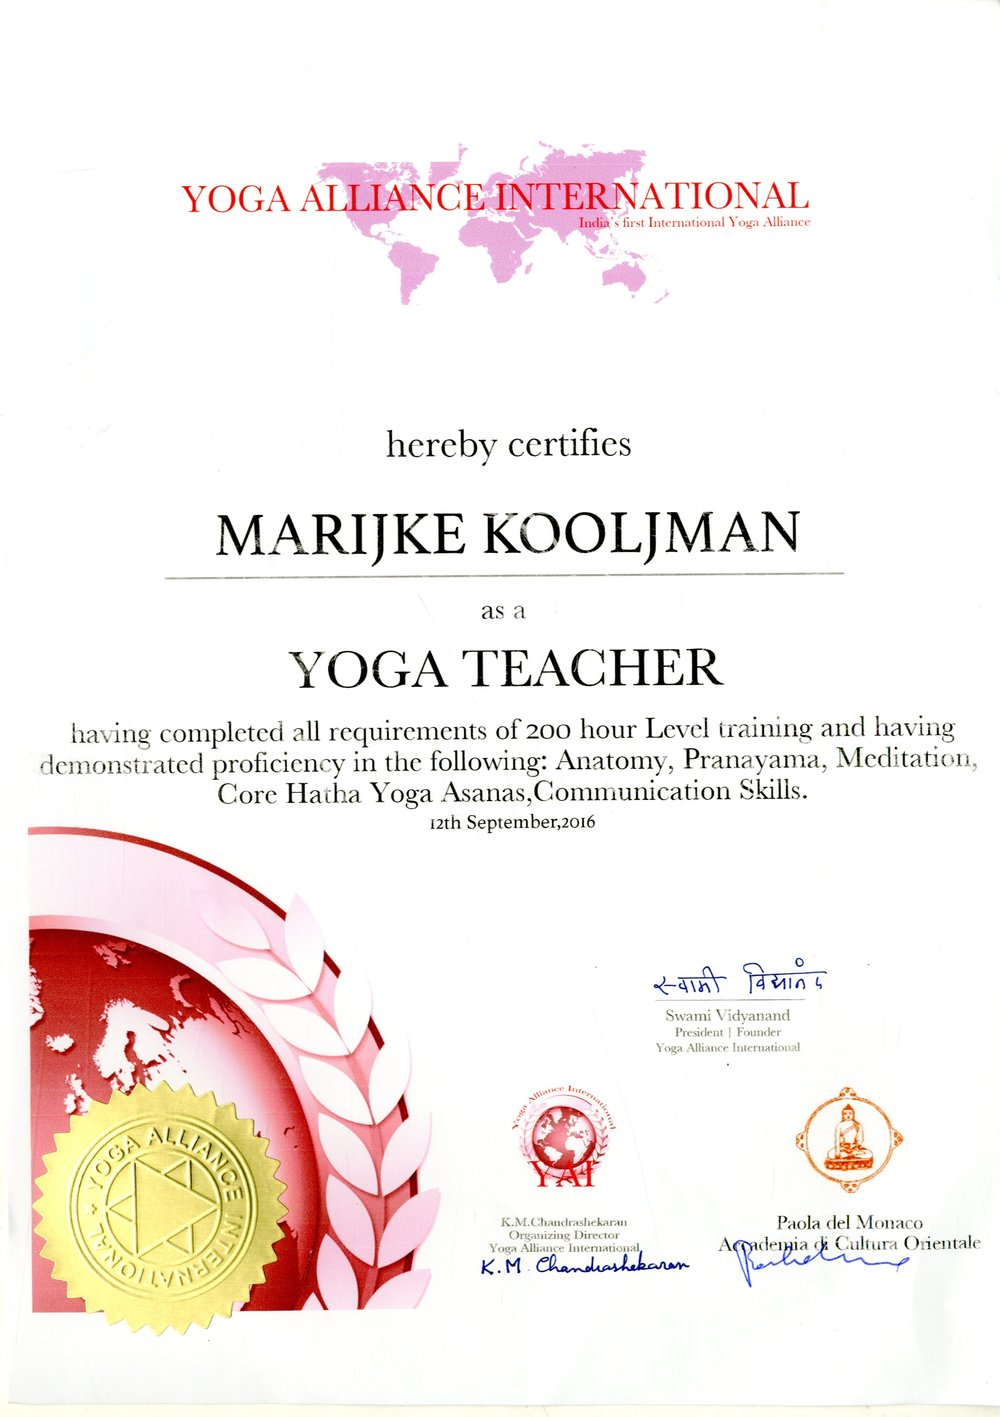 Diploma Yoga Alliance International (fai click per vedere l'immagine completa)